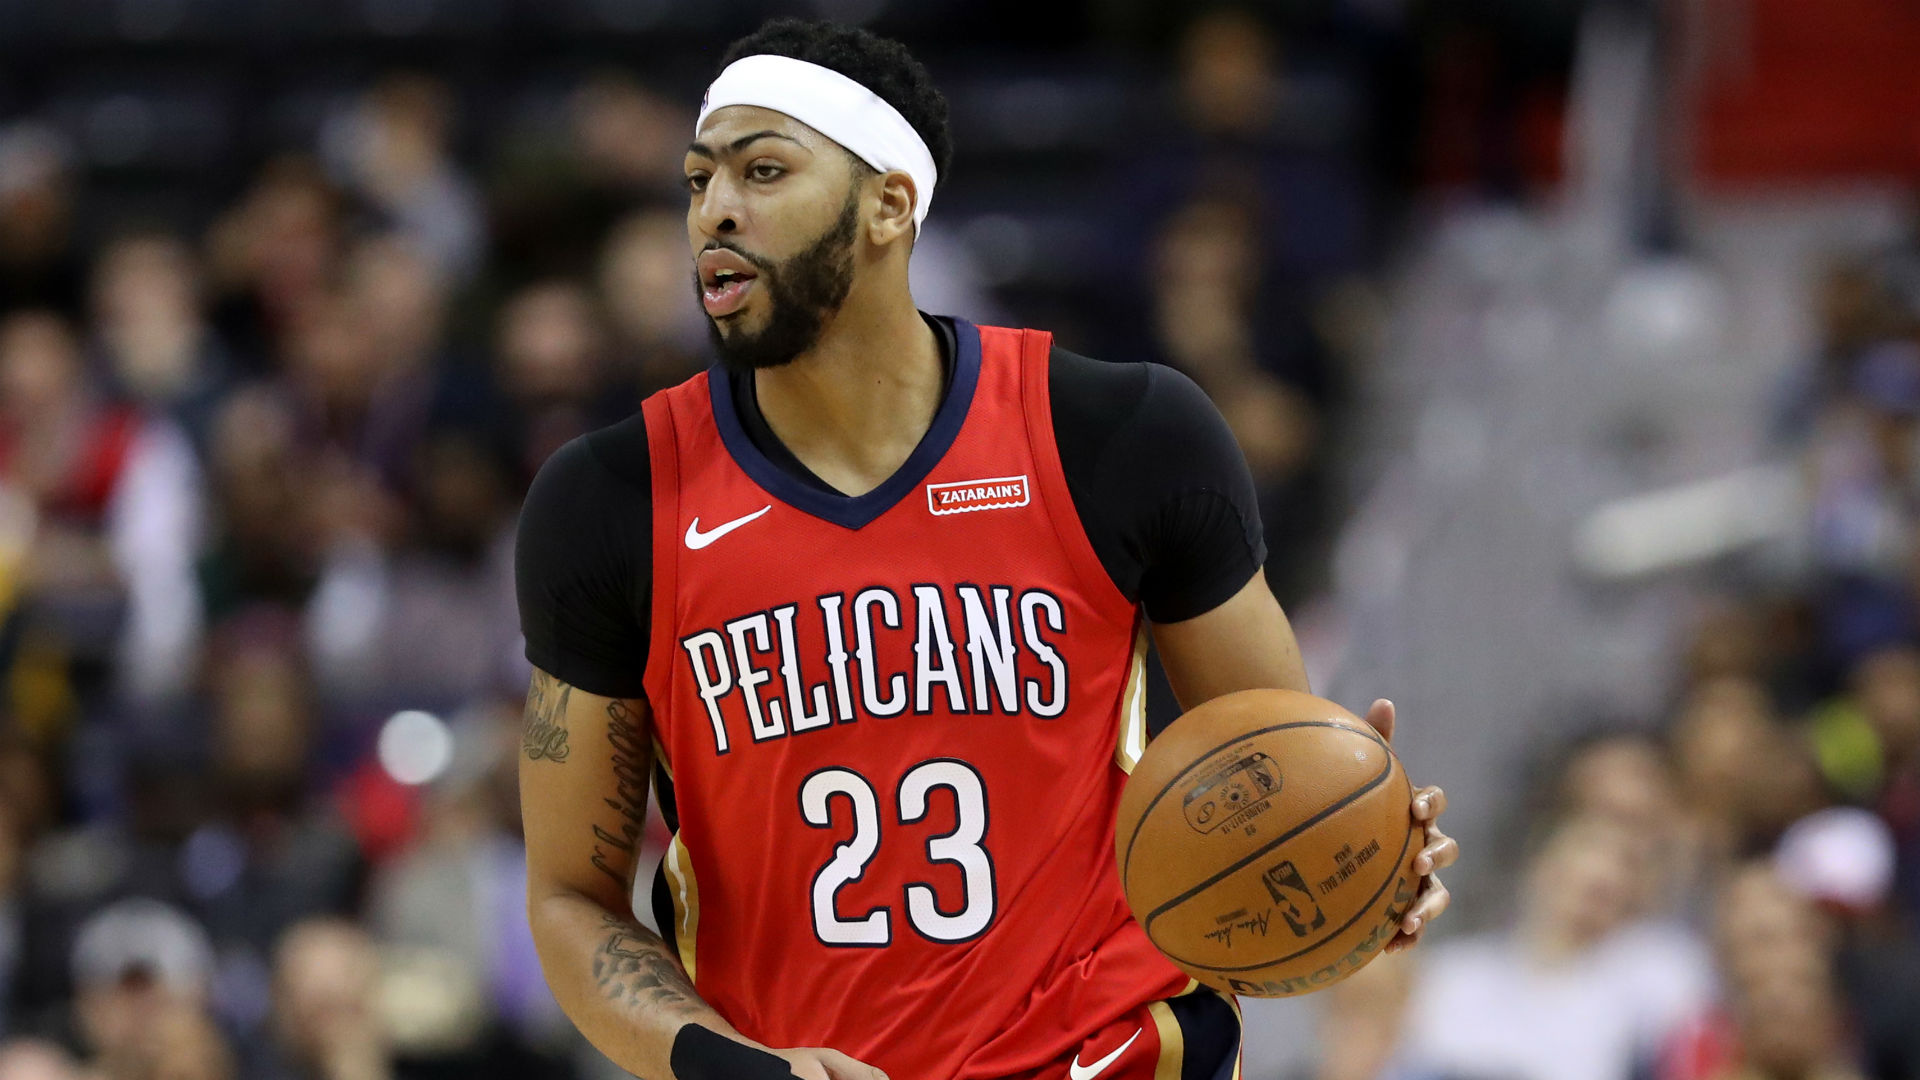 Pelicans All-Star Anthony Davis leaves game with ankle injury ... 317199183